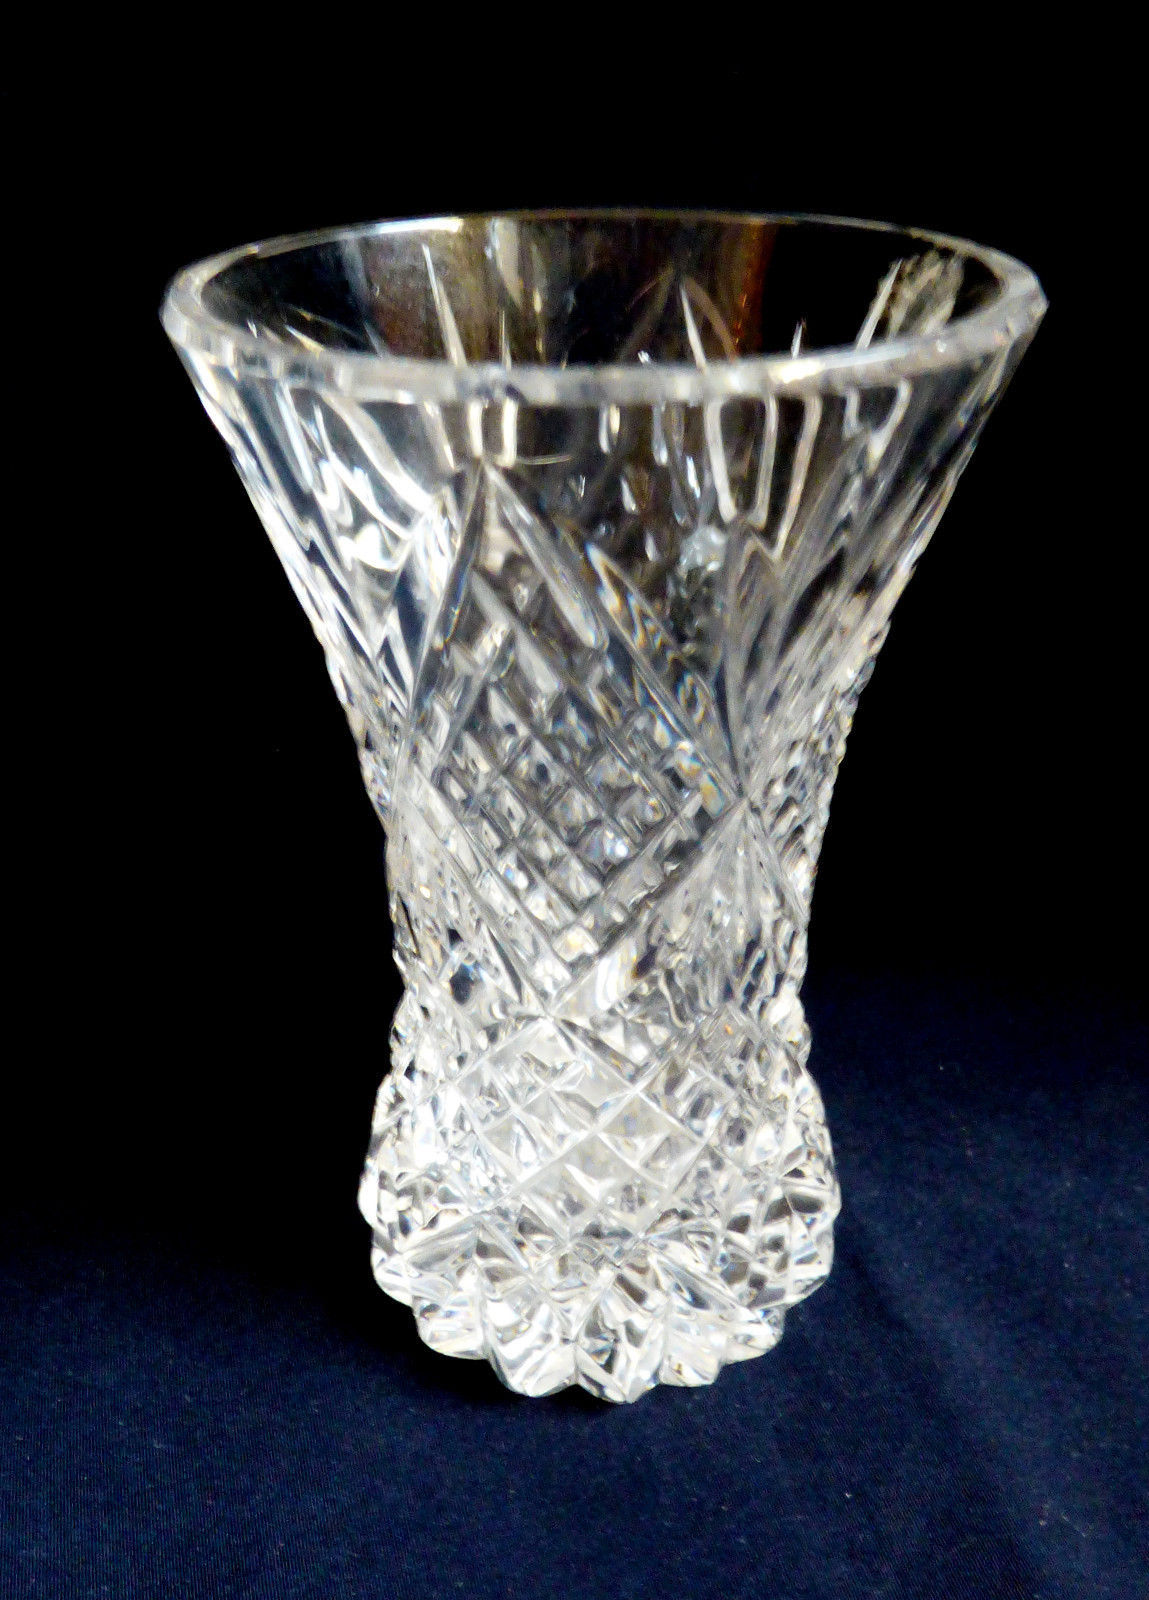 Primary image for Vintage cut Clear Crystal small bud vase diamond pattern design 4""